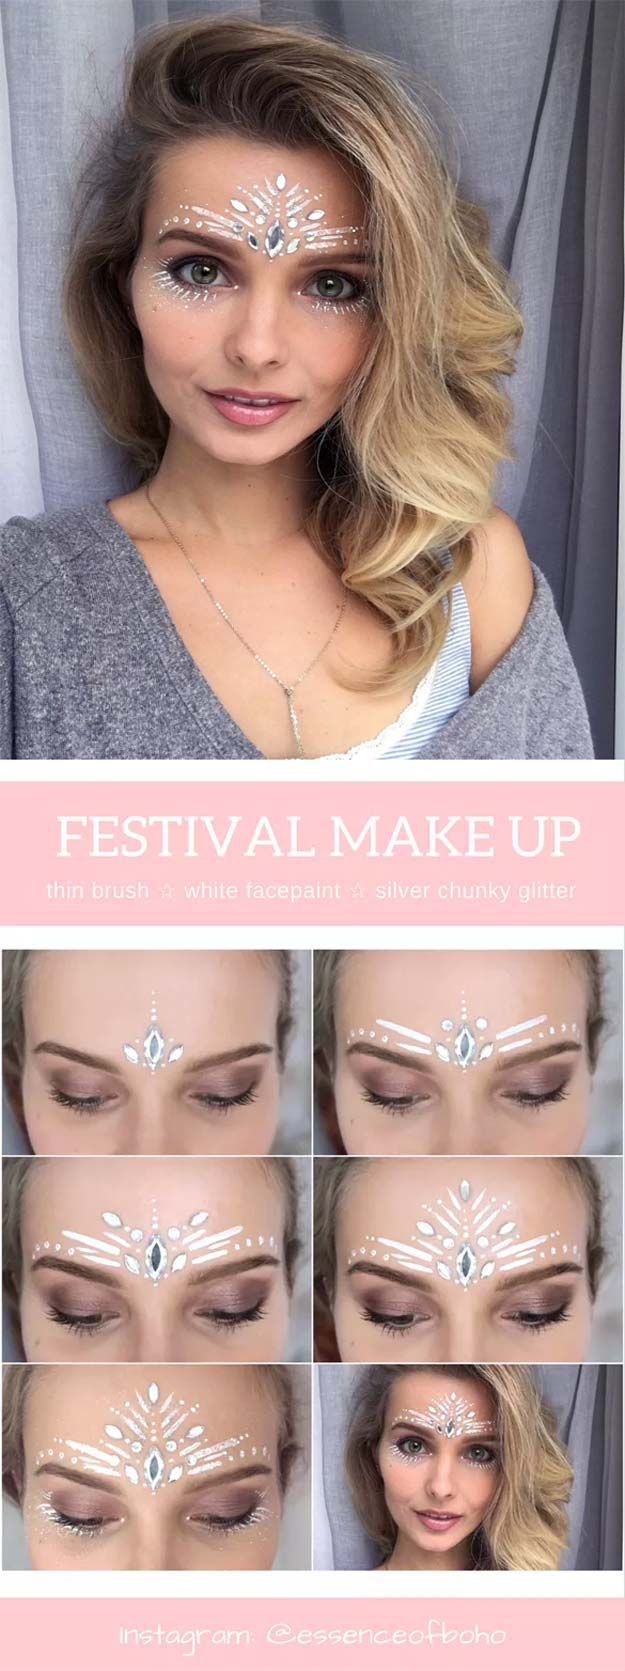 33 festival makeup tutorials summer music festivals edm and rave 33 festival makeup tutorials baditri Image collections